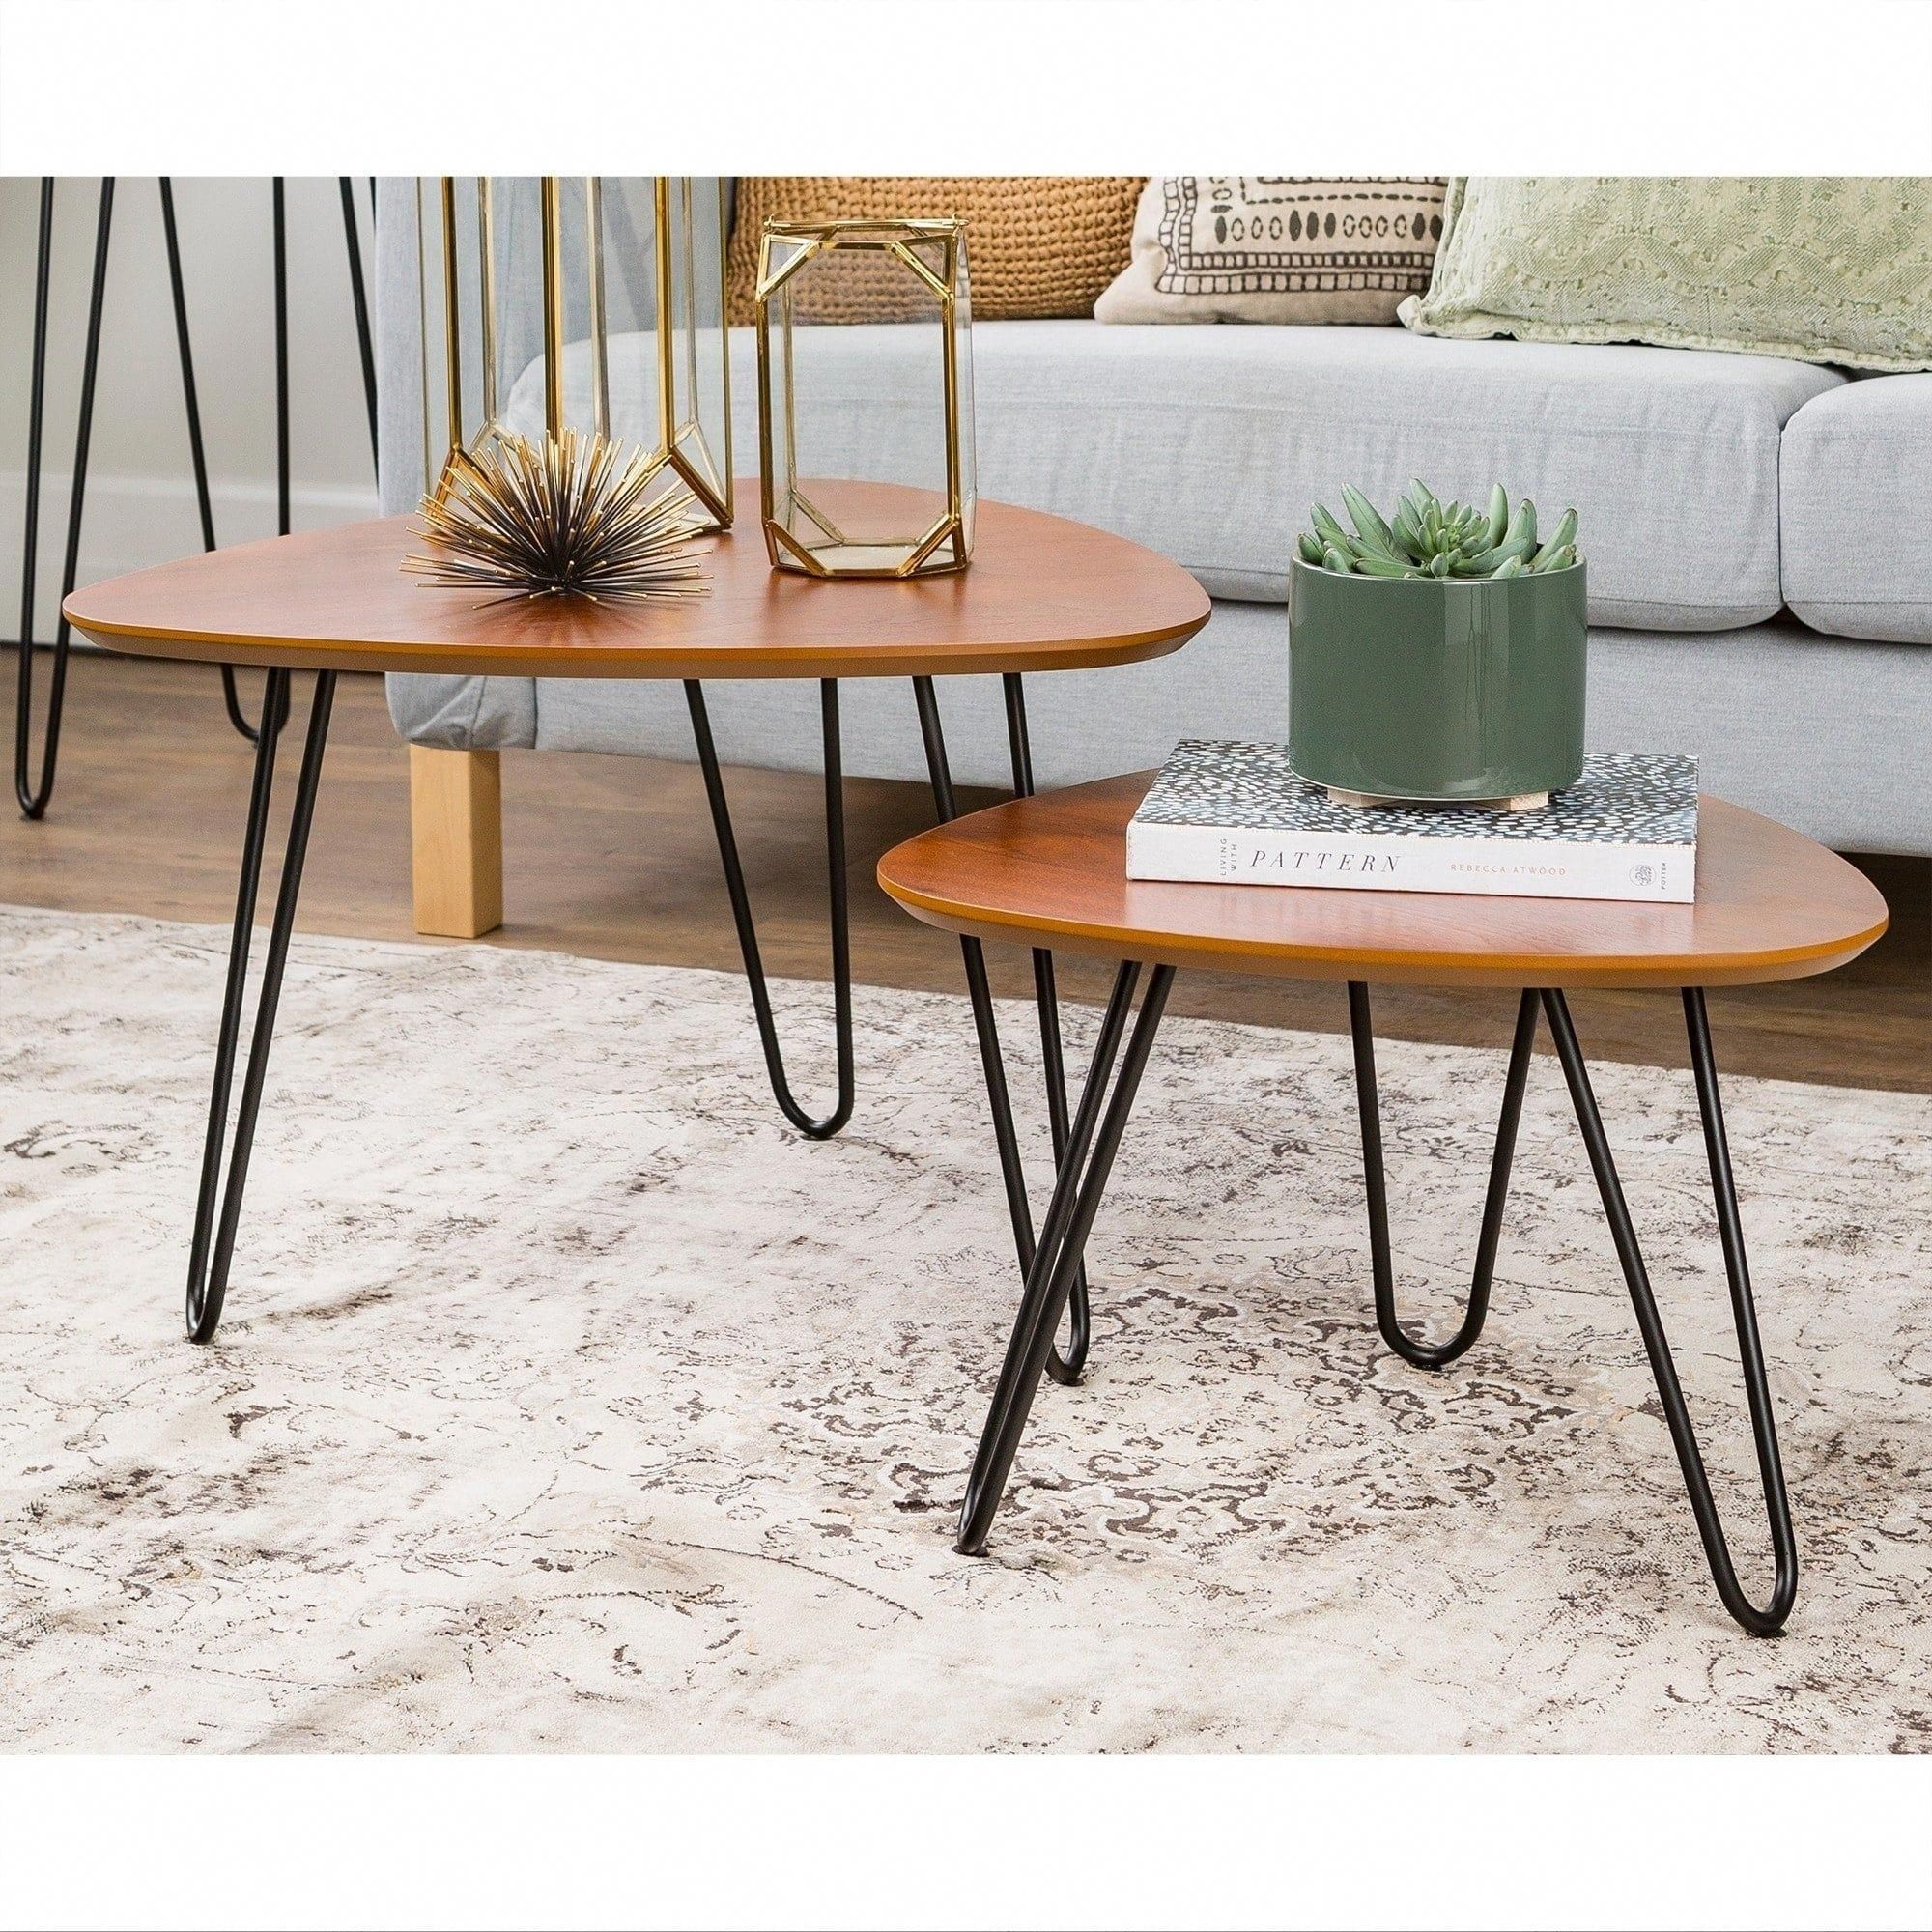 32 Inch Round Coffee Table Download Furniture 32 Round Coffee Table Decor Ideas Sensational C [ 2184 x 4204 Pixel ]